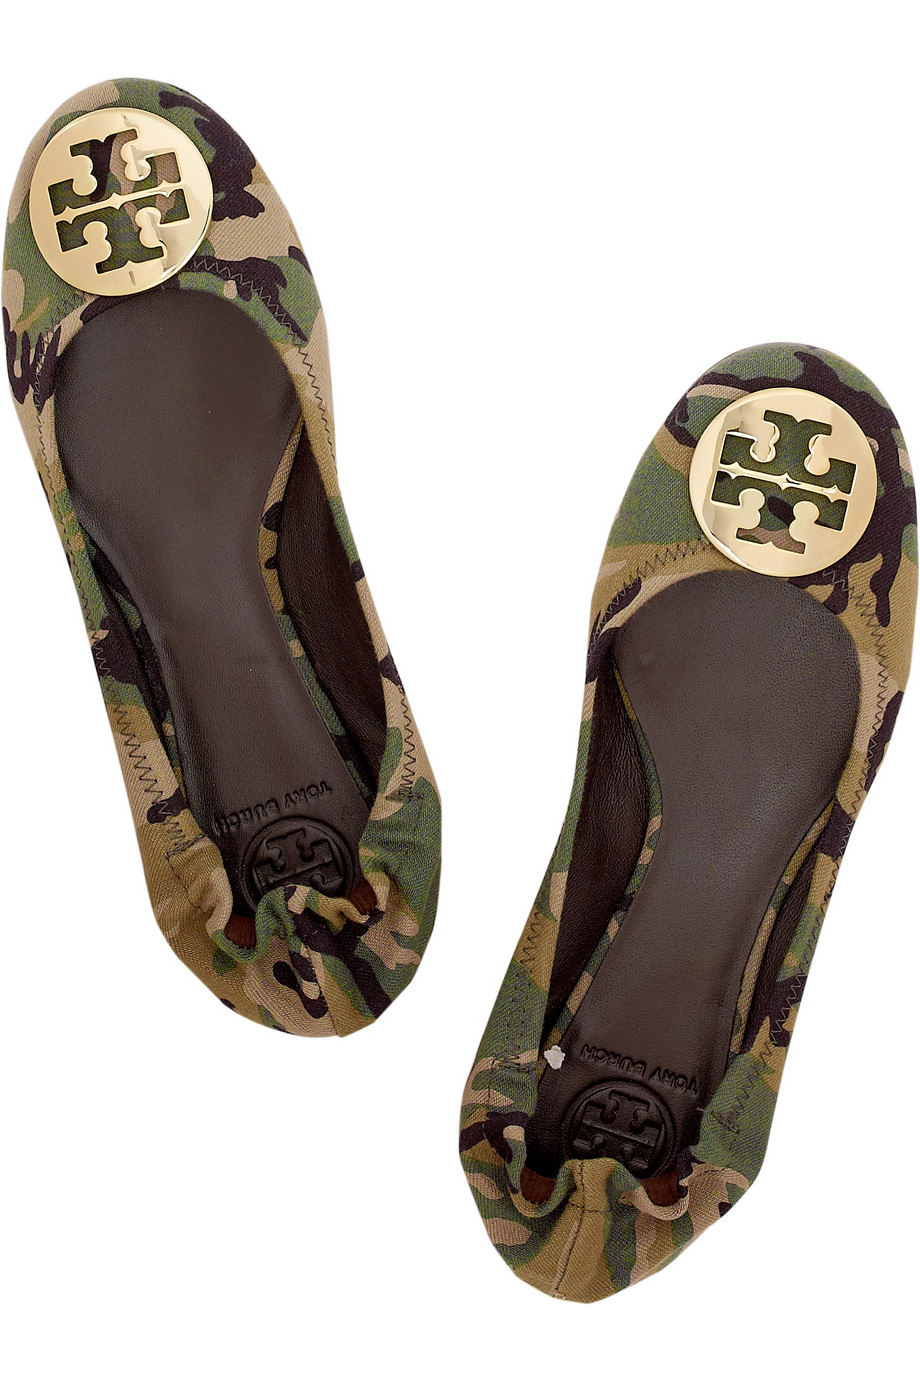 620518a25a2f Tory Burch Reva Camouflage Ballerina Flats in Green - Lyst